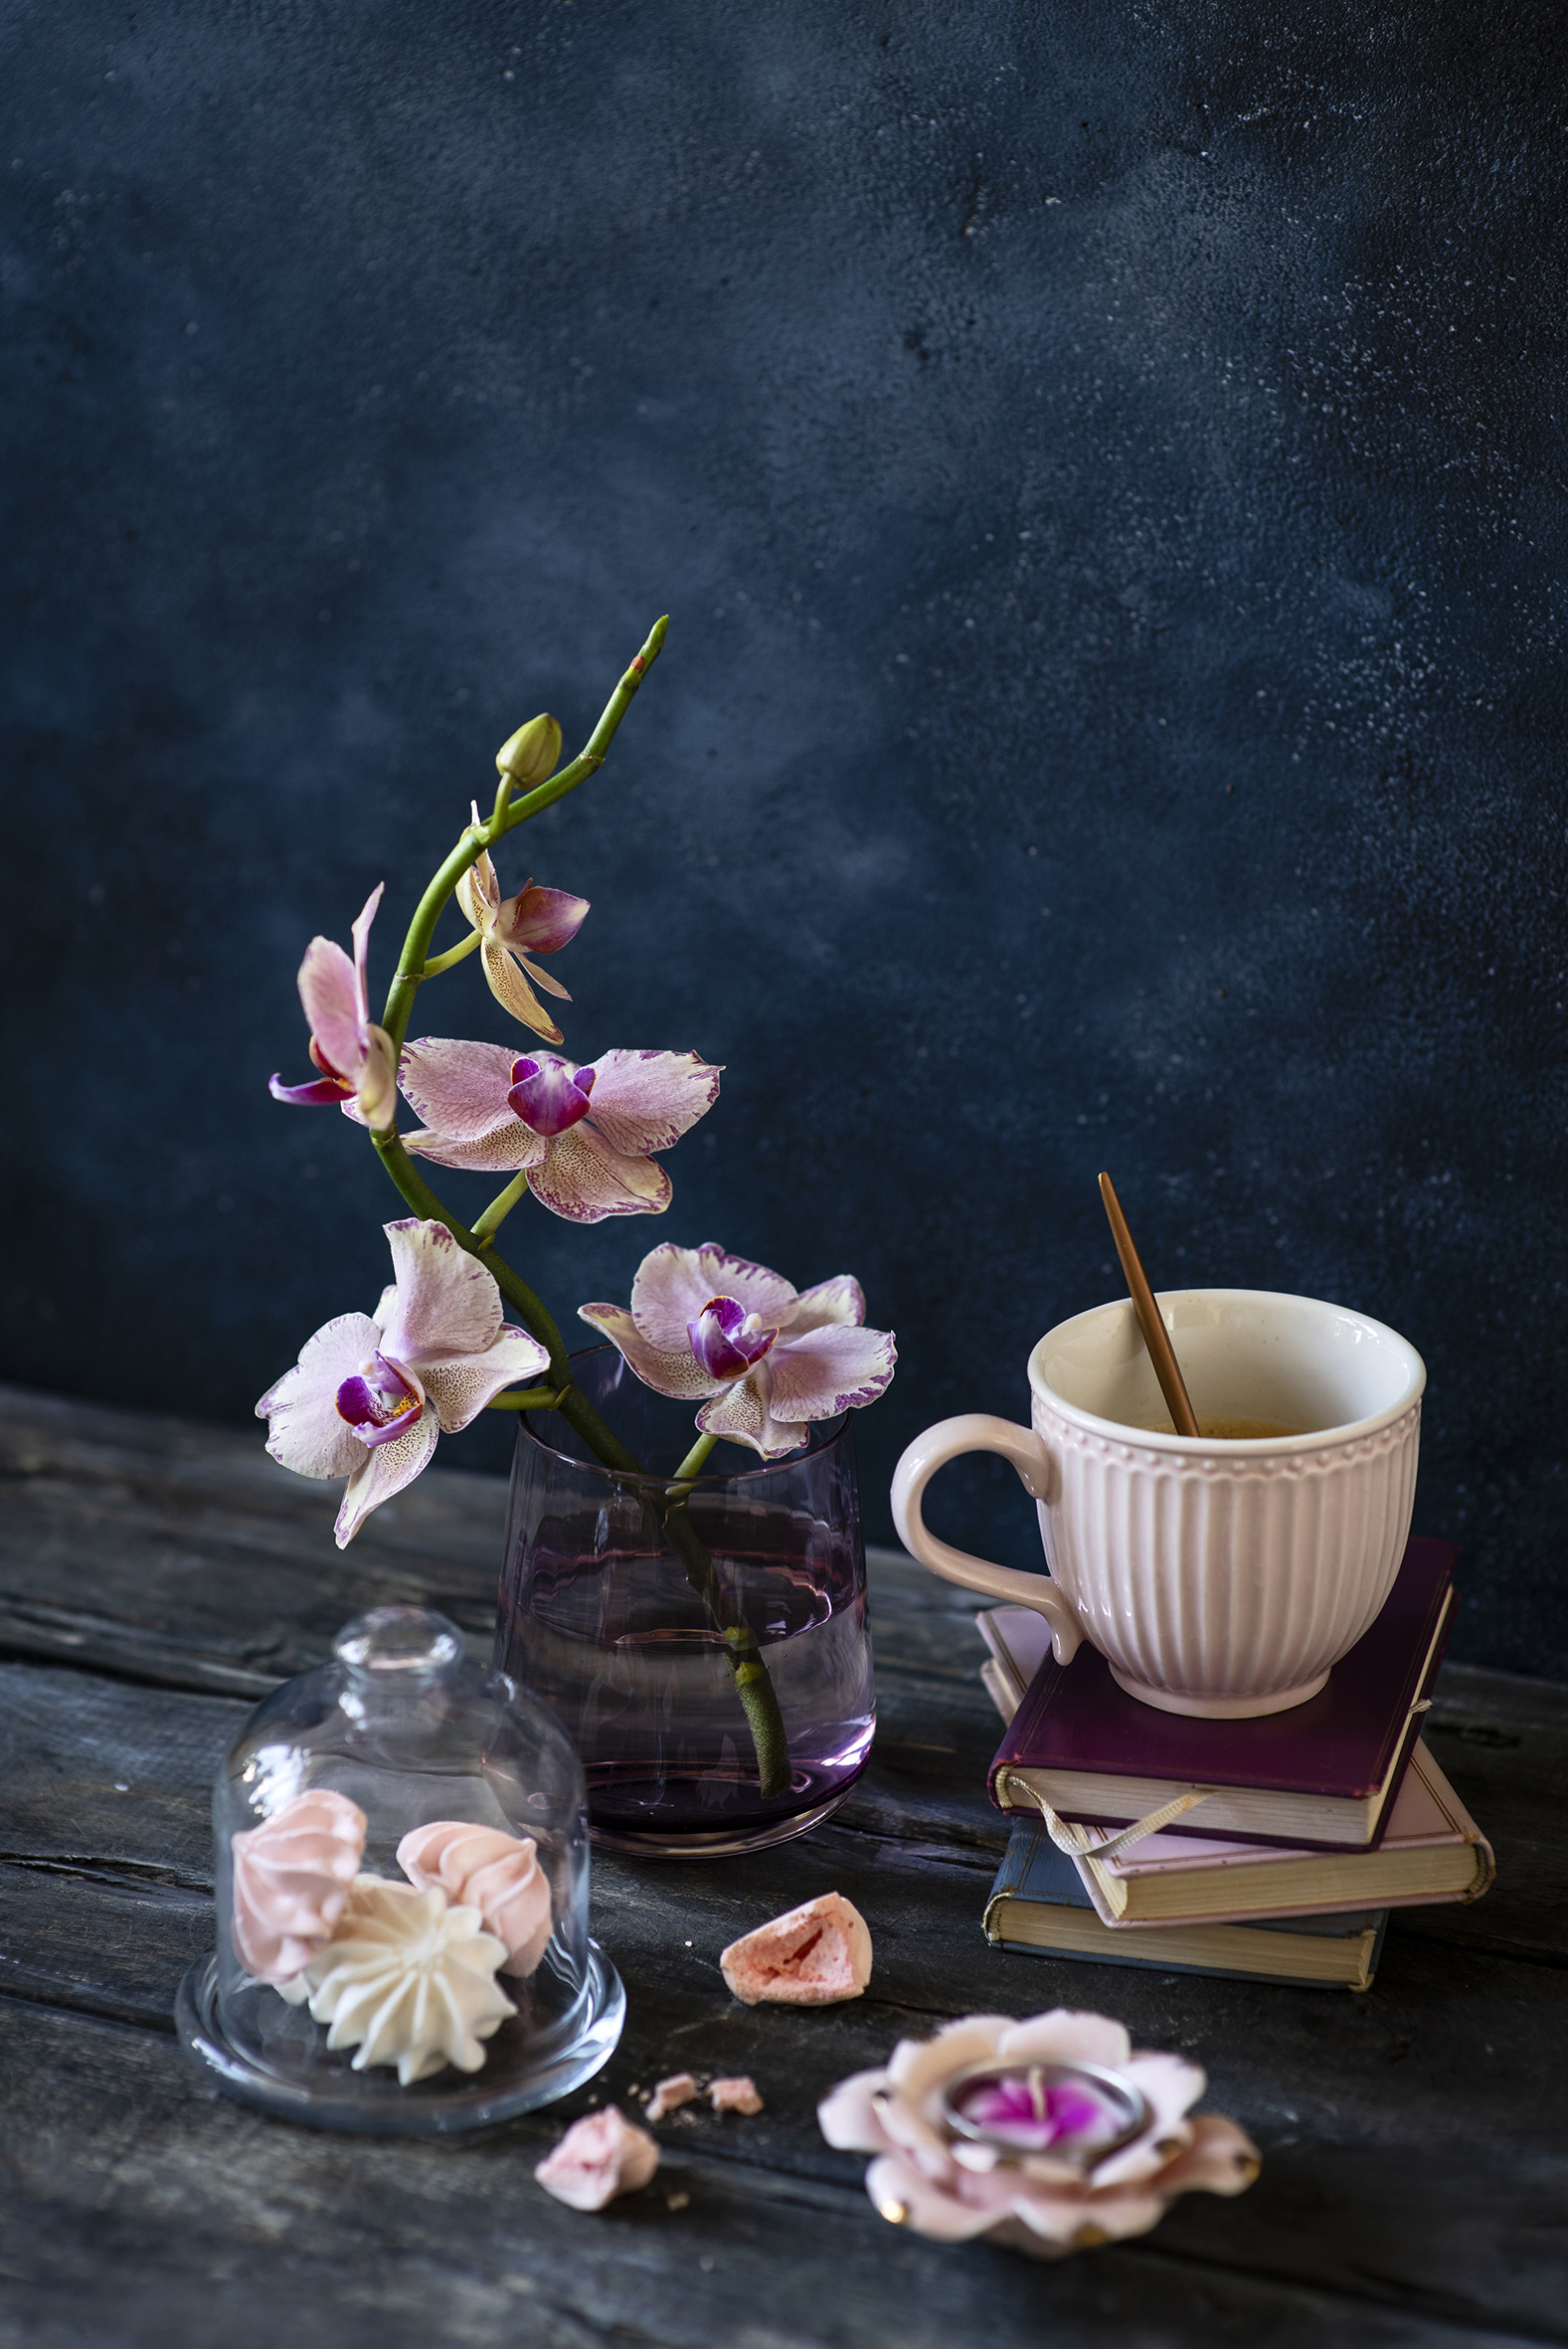 Photos orchids flower Cup Book Food Candles Sweets Still-life Wood planks  for Mobile phone Orchid Flowers books confectionery boards